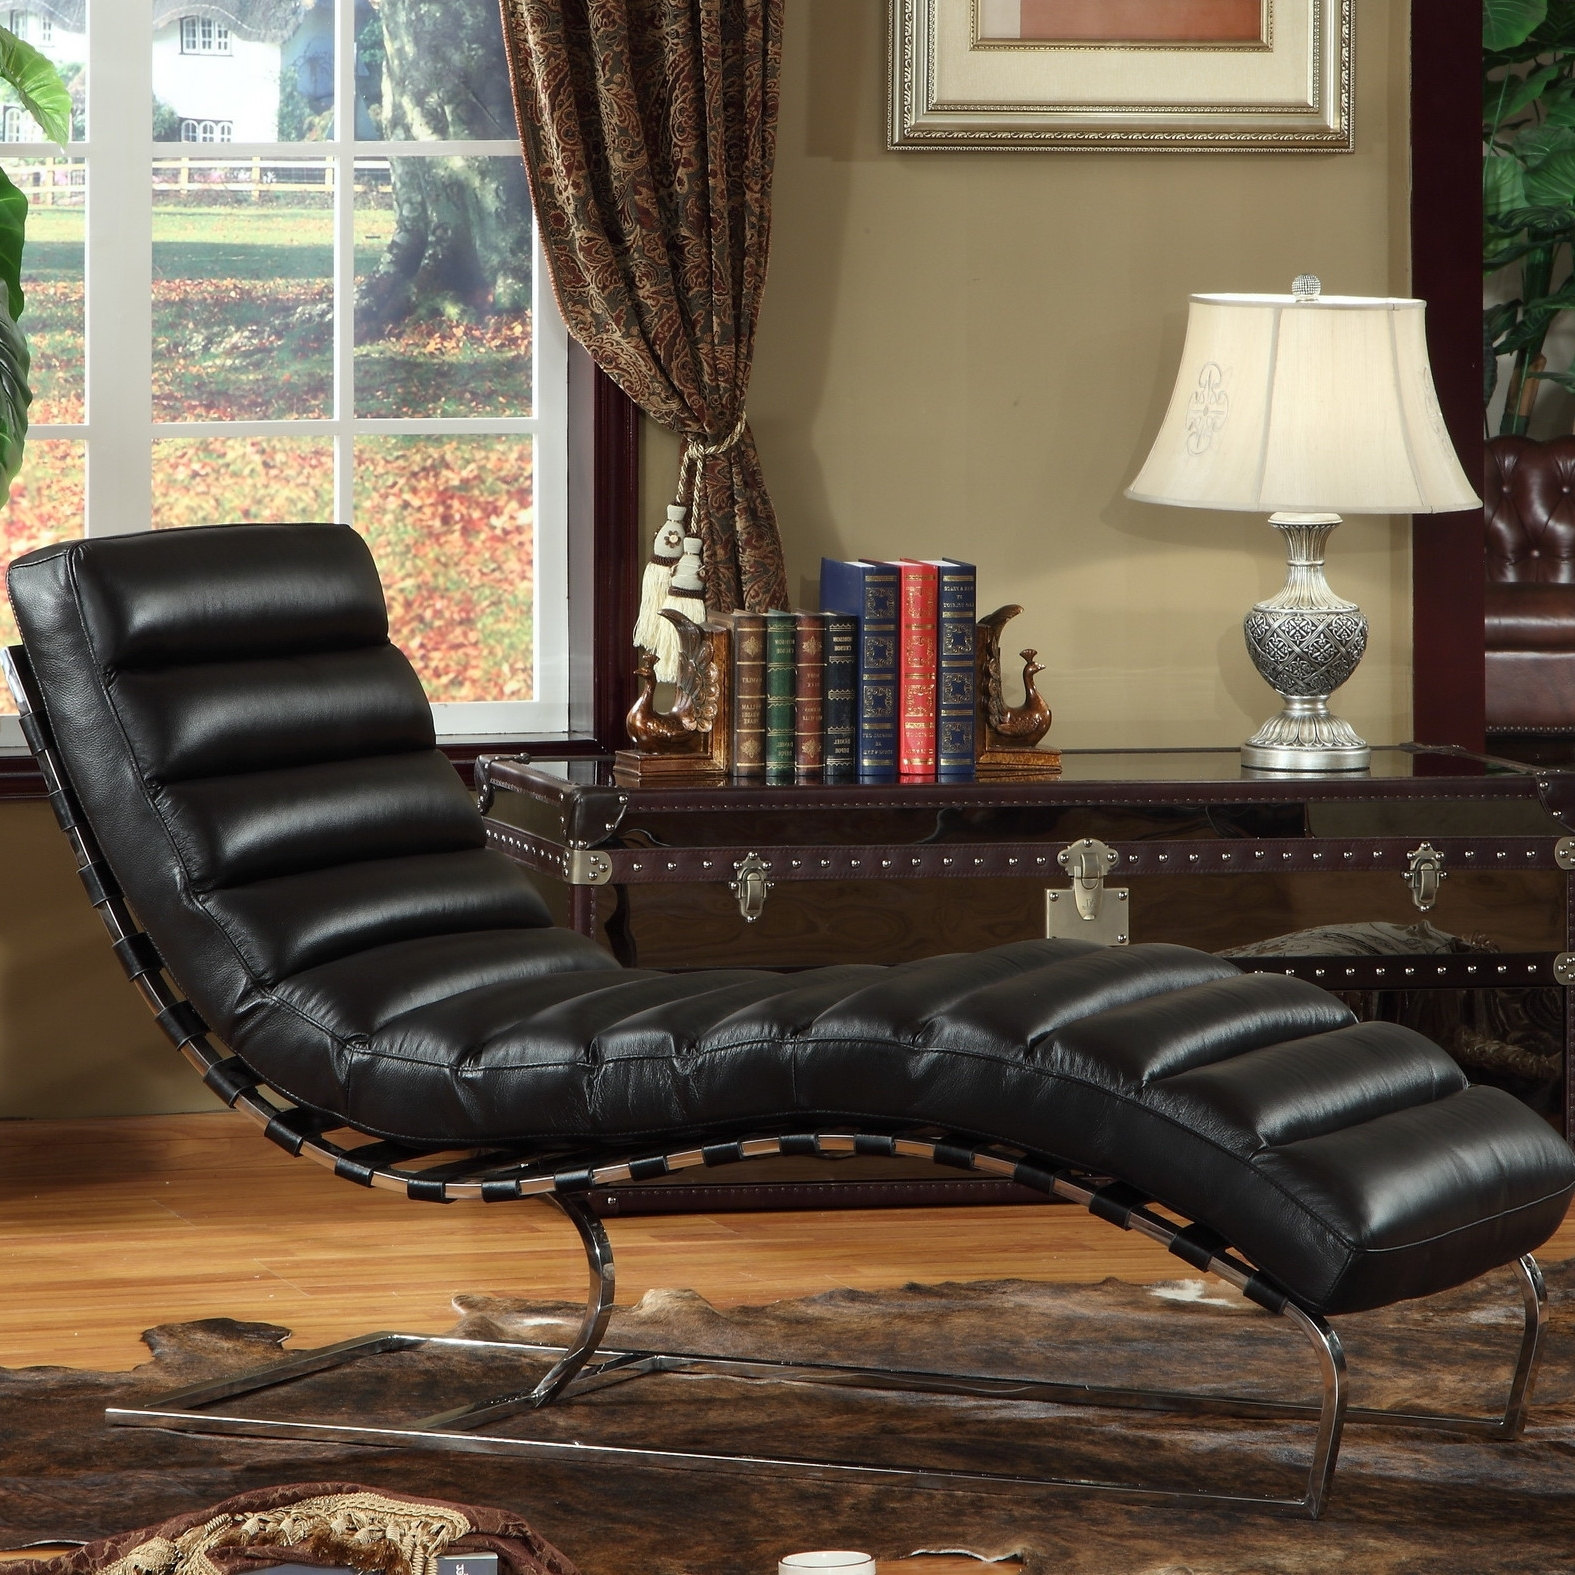 Well Liked Beautiful Leather Chaise Lounge Chair — Lustwithalaugh Design In Leather Chaise Lounges (View 10 of 15)